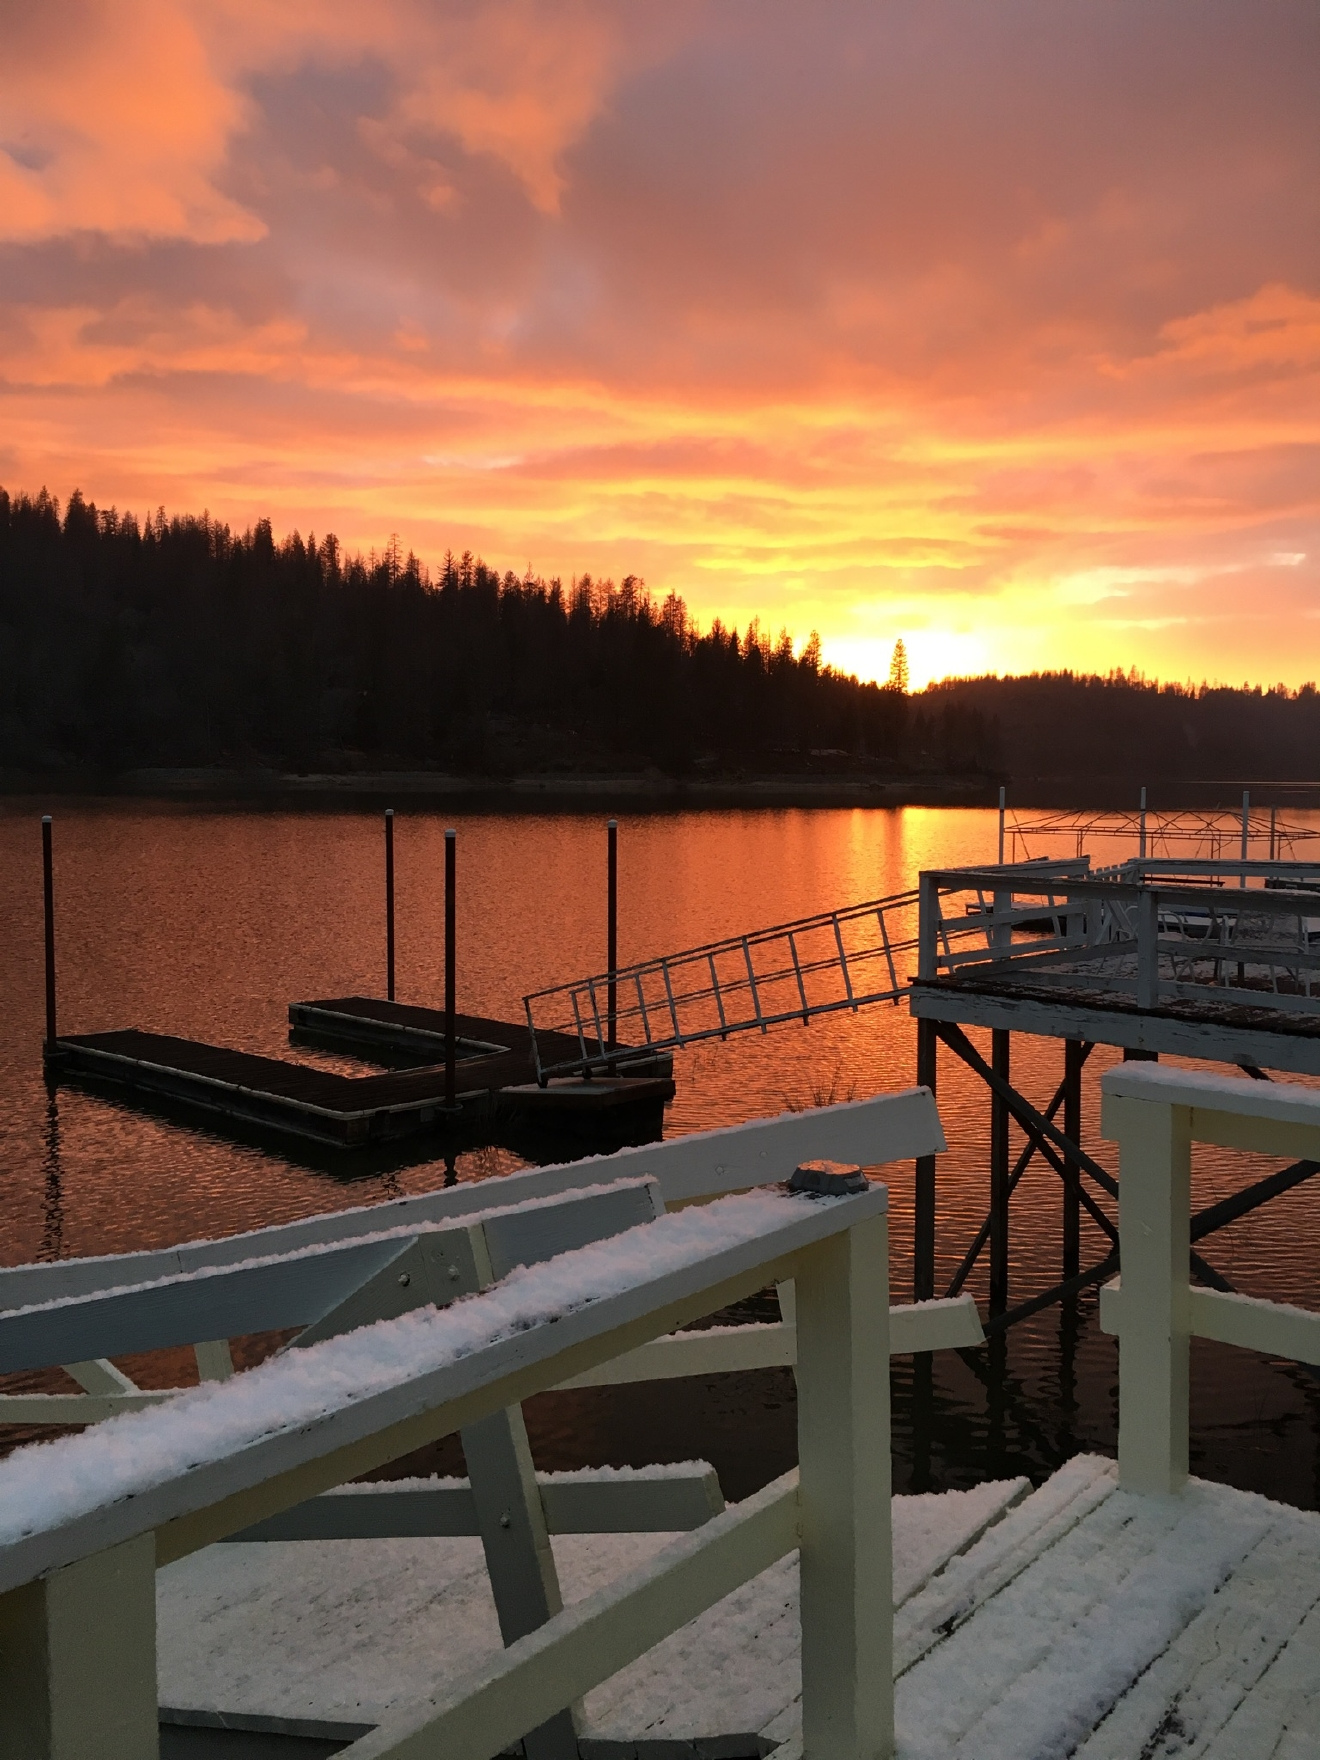 Bass Lake sunset from the snowy dock by Debbie Henes 2/23/17